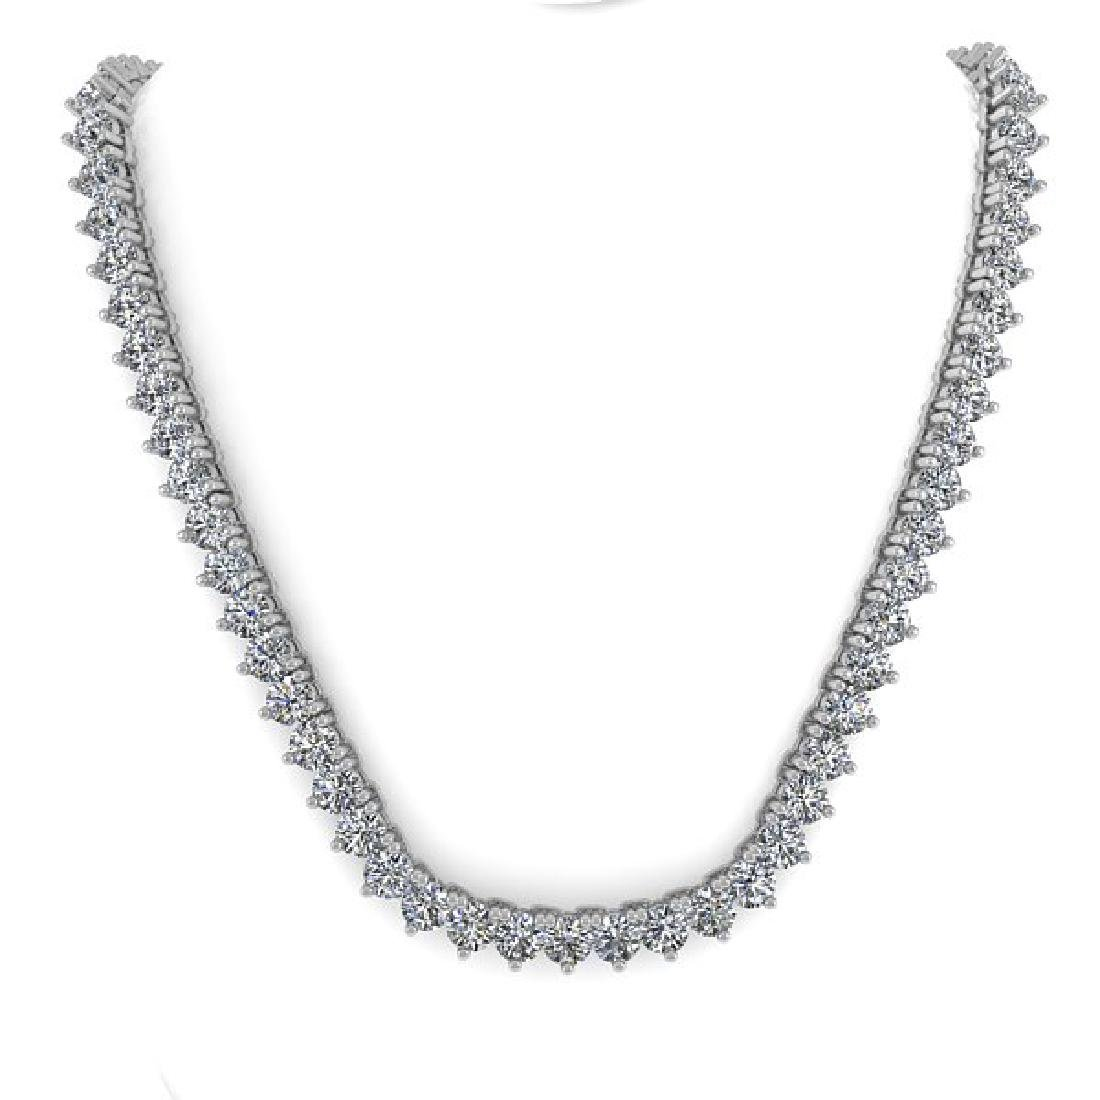 38 CTW Solitaire SI Diamond Necklace 14K White Gold - 3